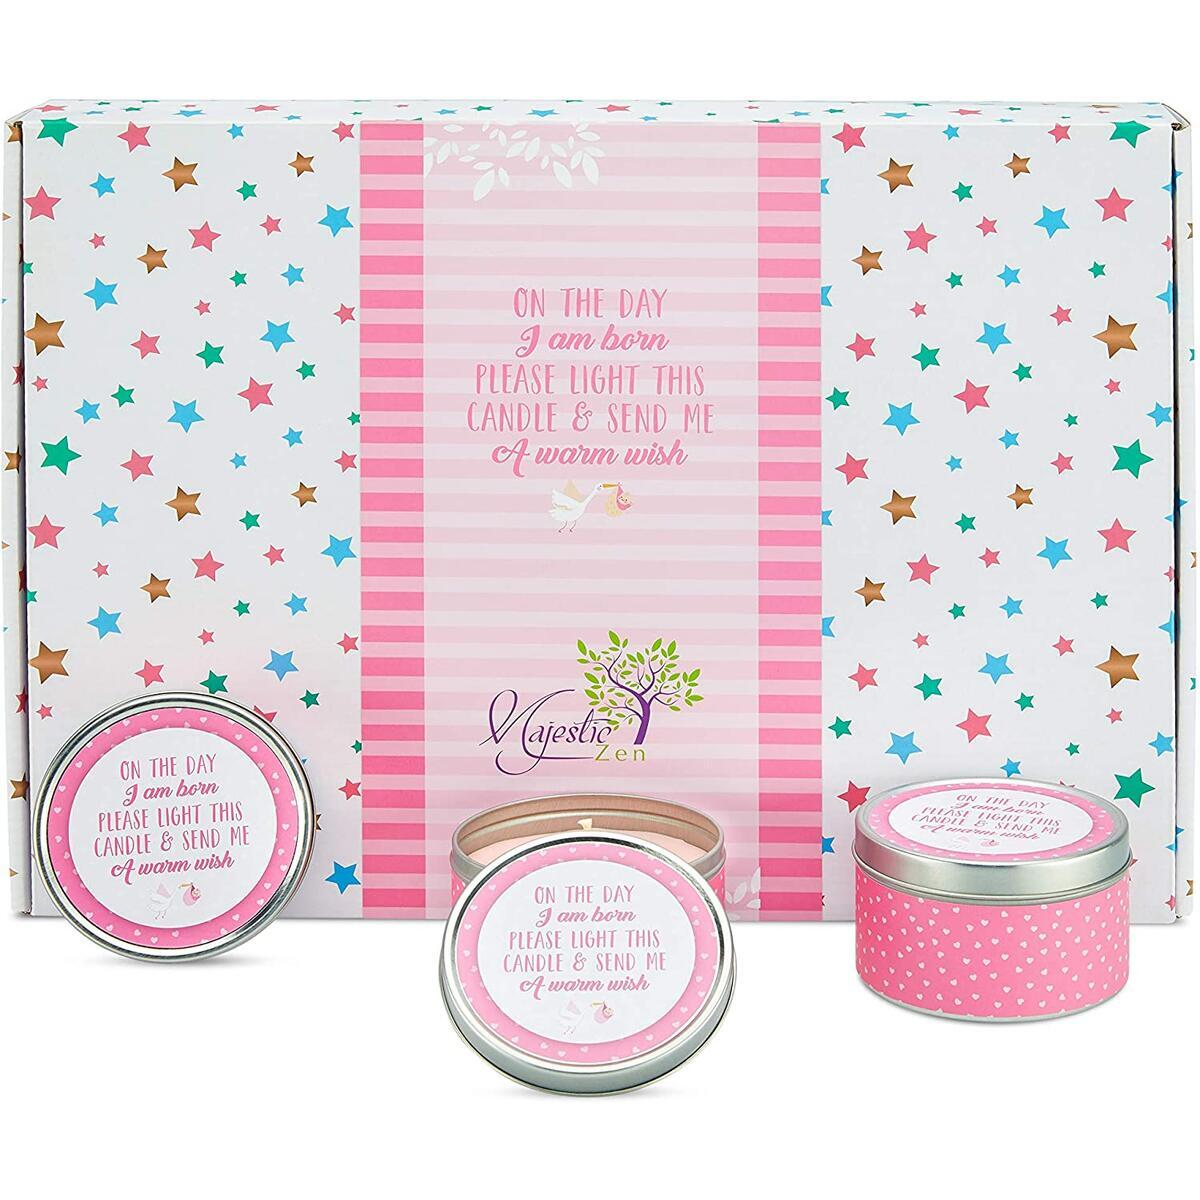 Baby Shower Party Favors Candles- for Boys, Girls and Gender Neutral-Unisex. Set of 12 Elegant Pink Colored- Send A Wish Baby Shower Party Favors for Guests- Great Options for Gender Reveal Parties